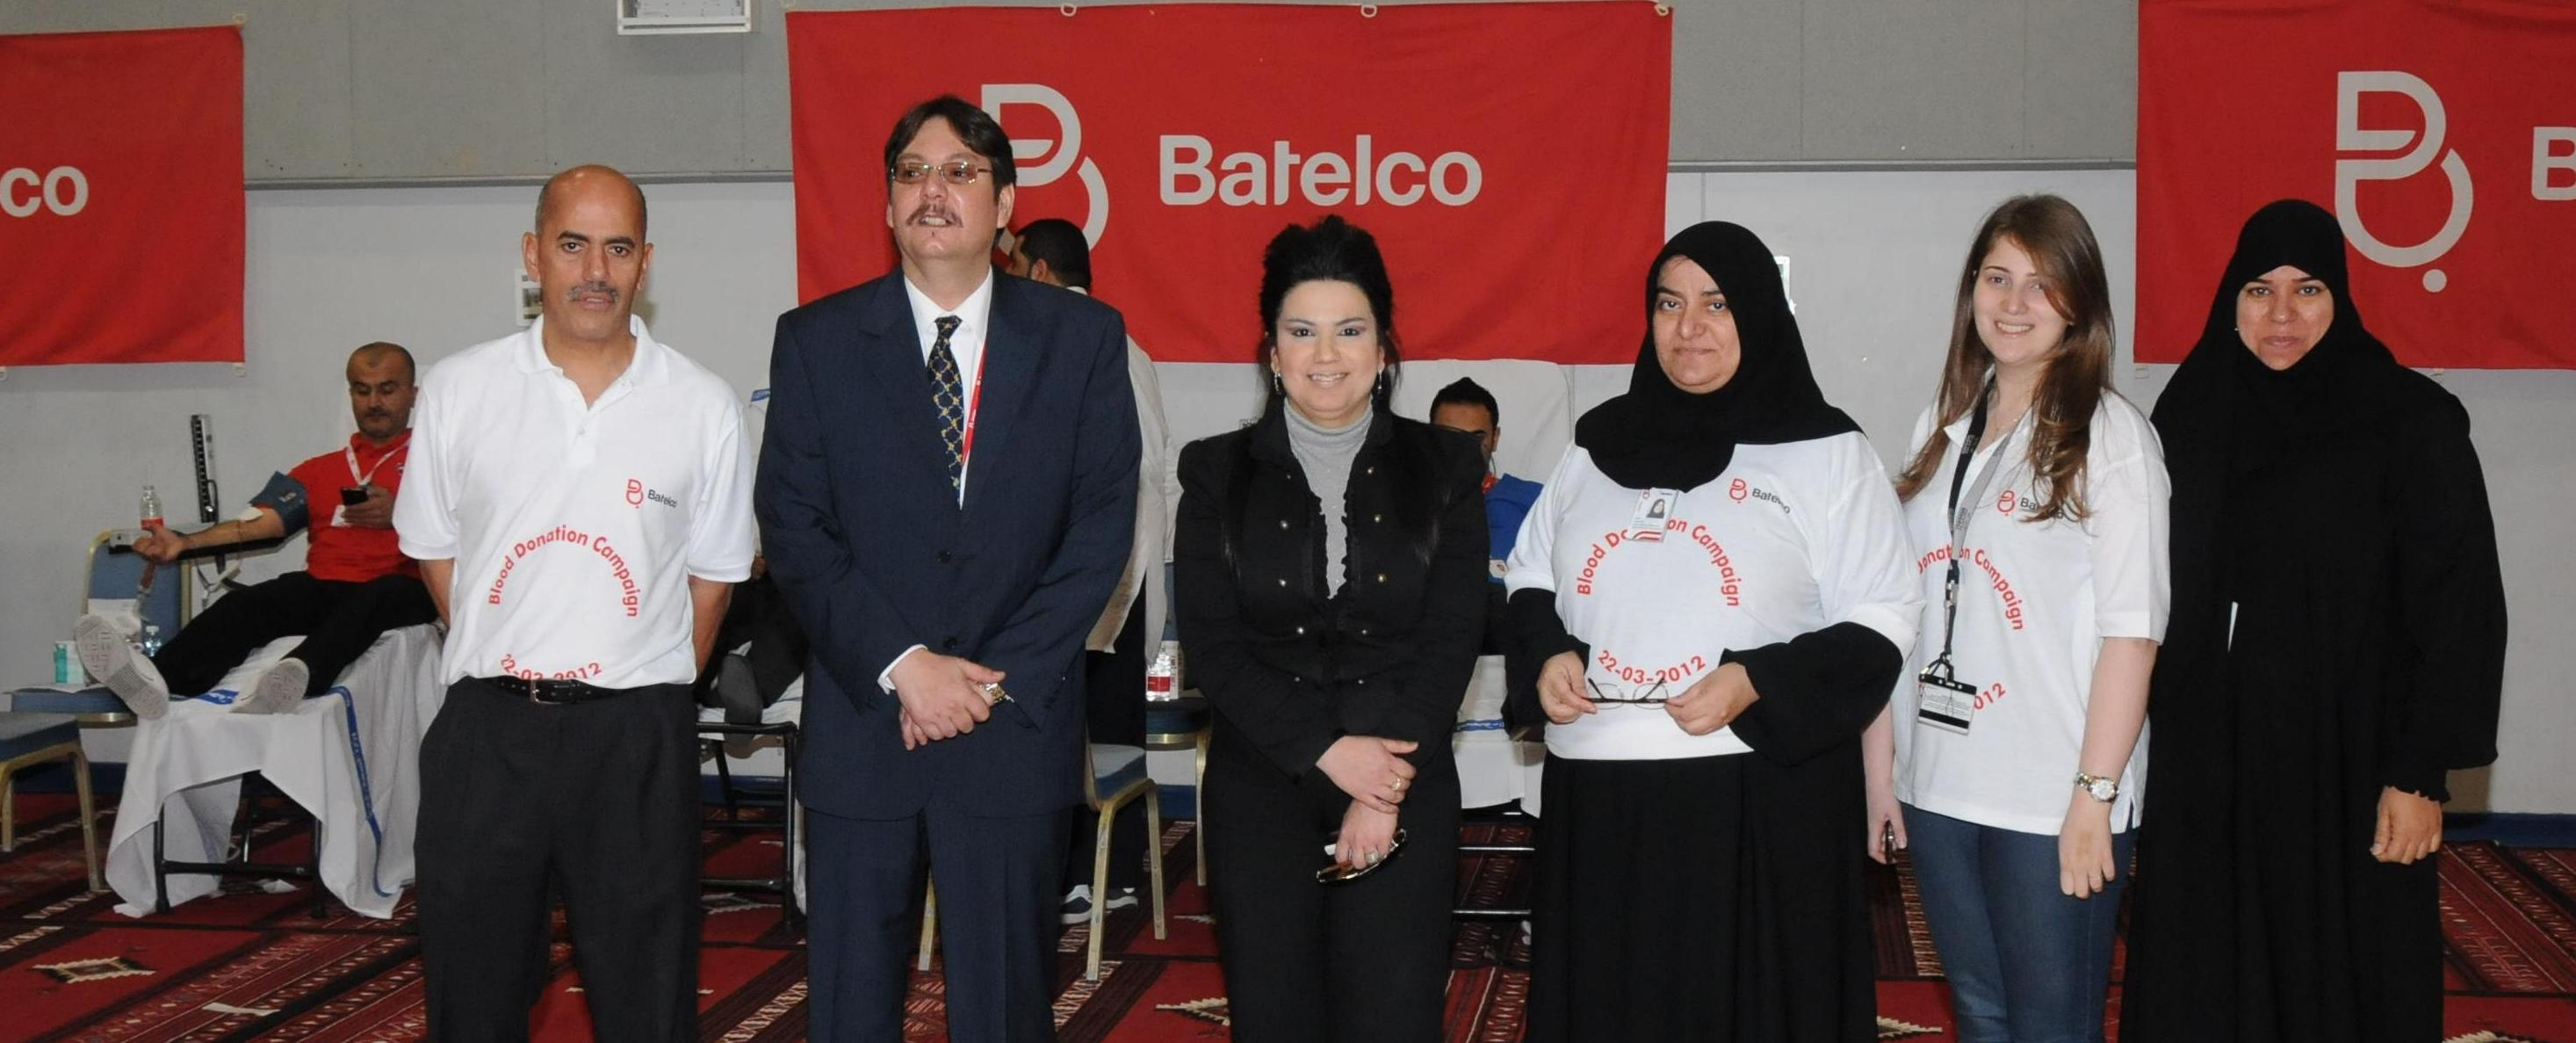 Batelco Staff Donate Blood to Support Salmaniya Medical Centre's